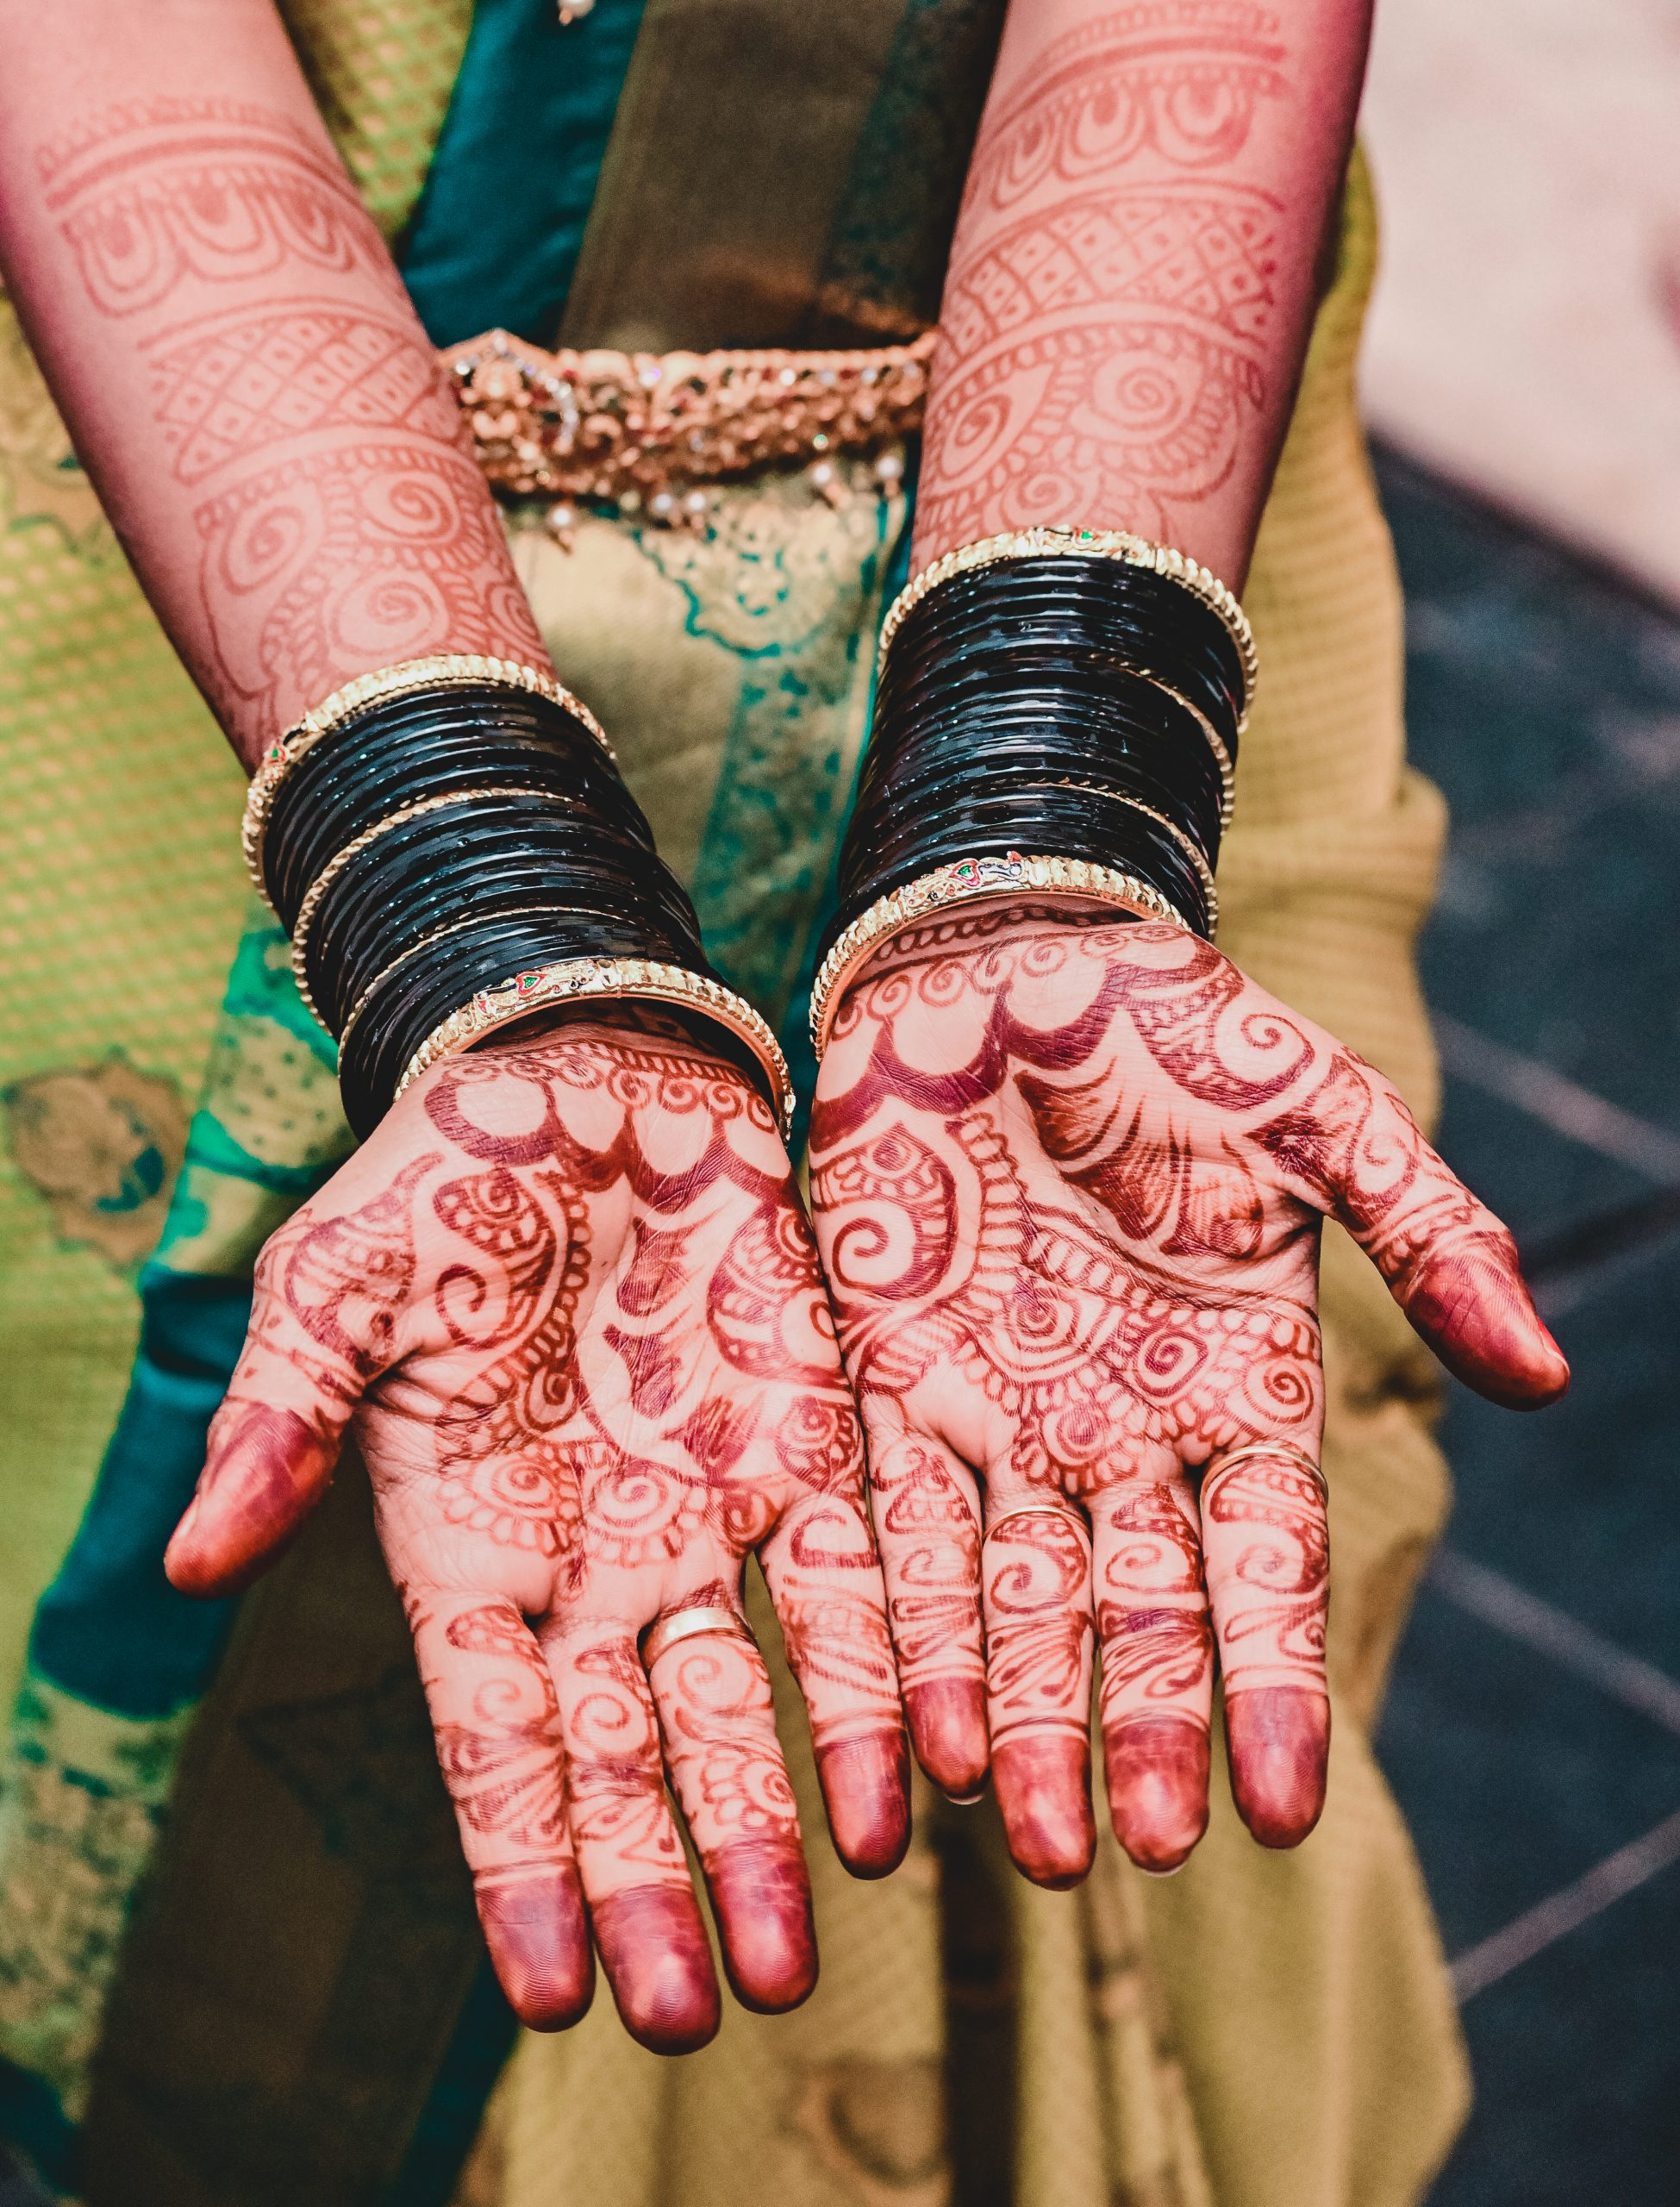 Mehndi design on a woman's hands